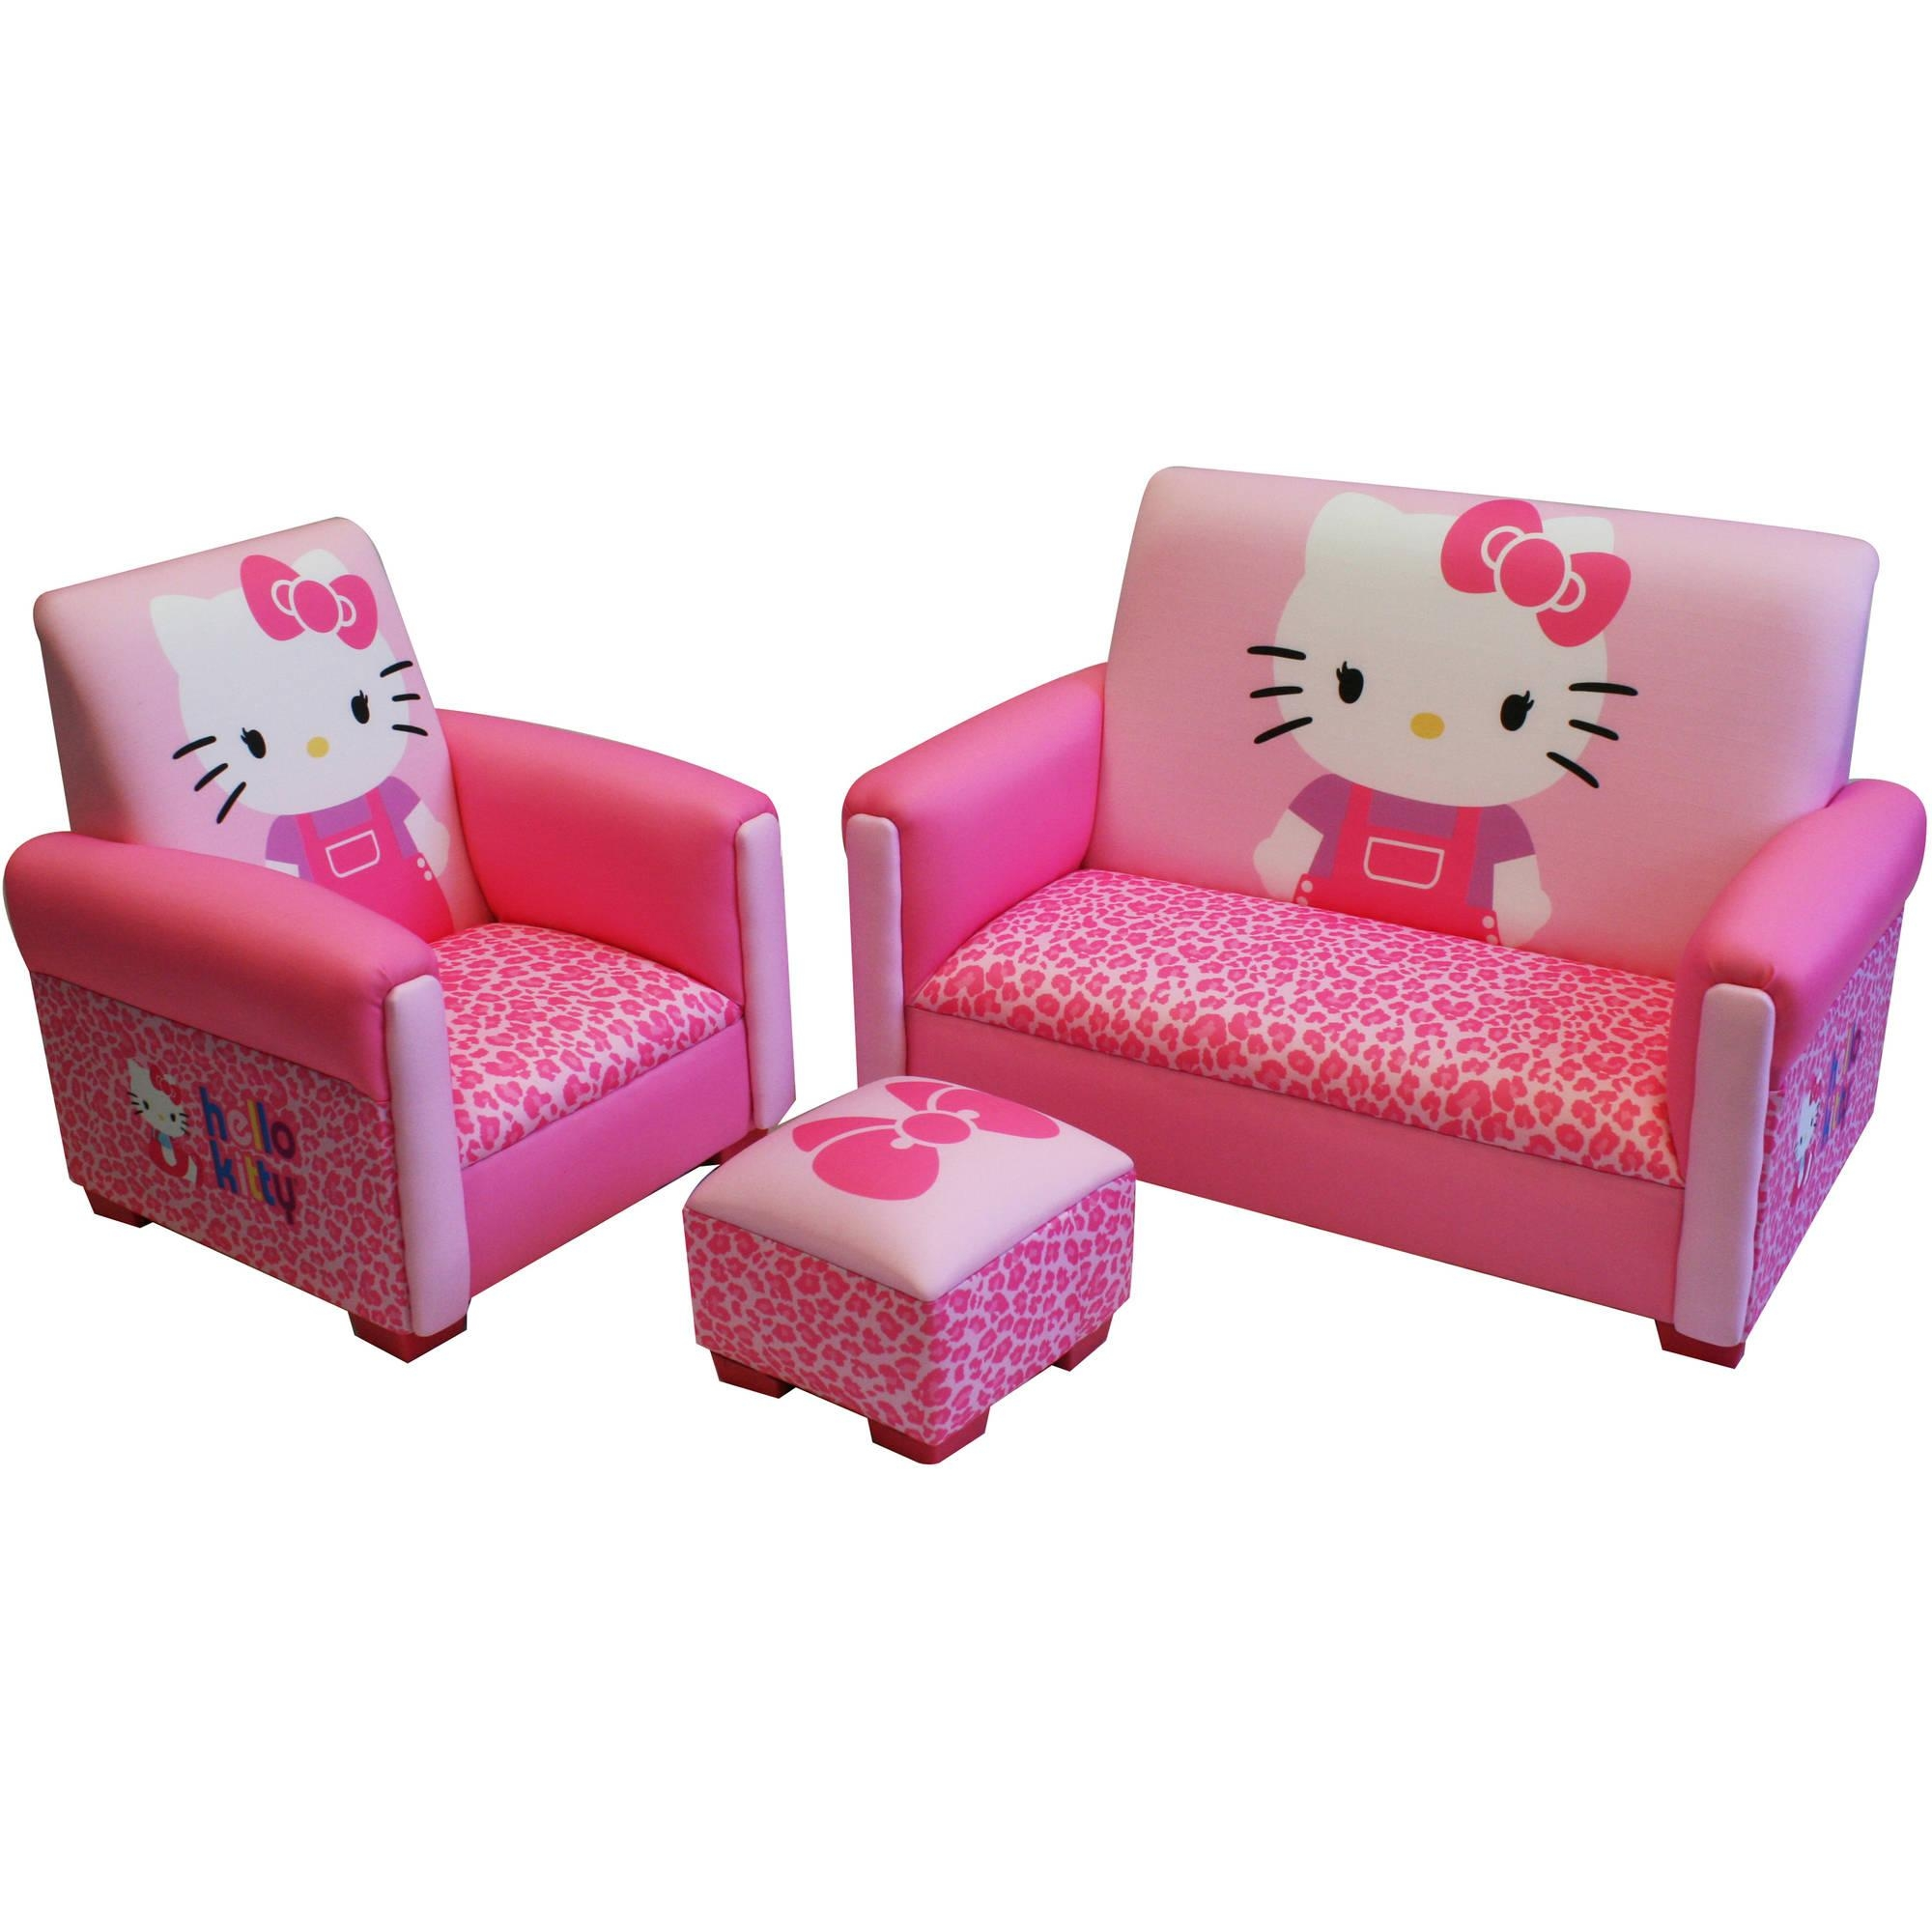 Hello Kitty Bows Toddler 3 Piece Sofa, Chair And Ottoman Set Intended For Sofa Chair And Ottoman (Image 11 of 20)